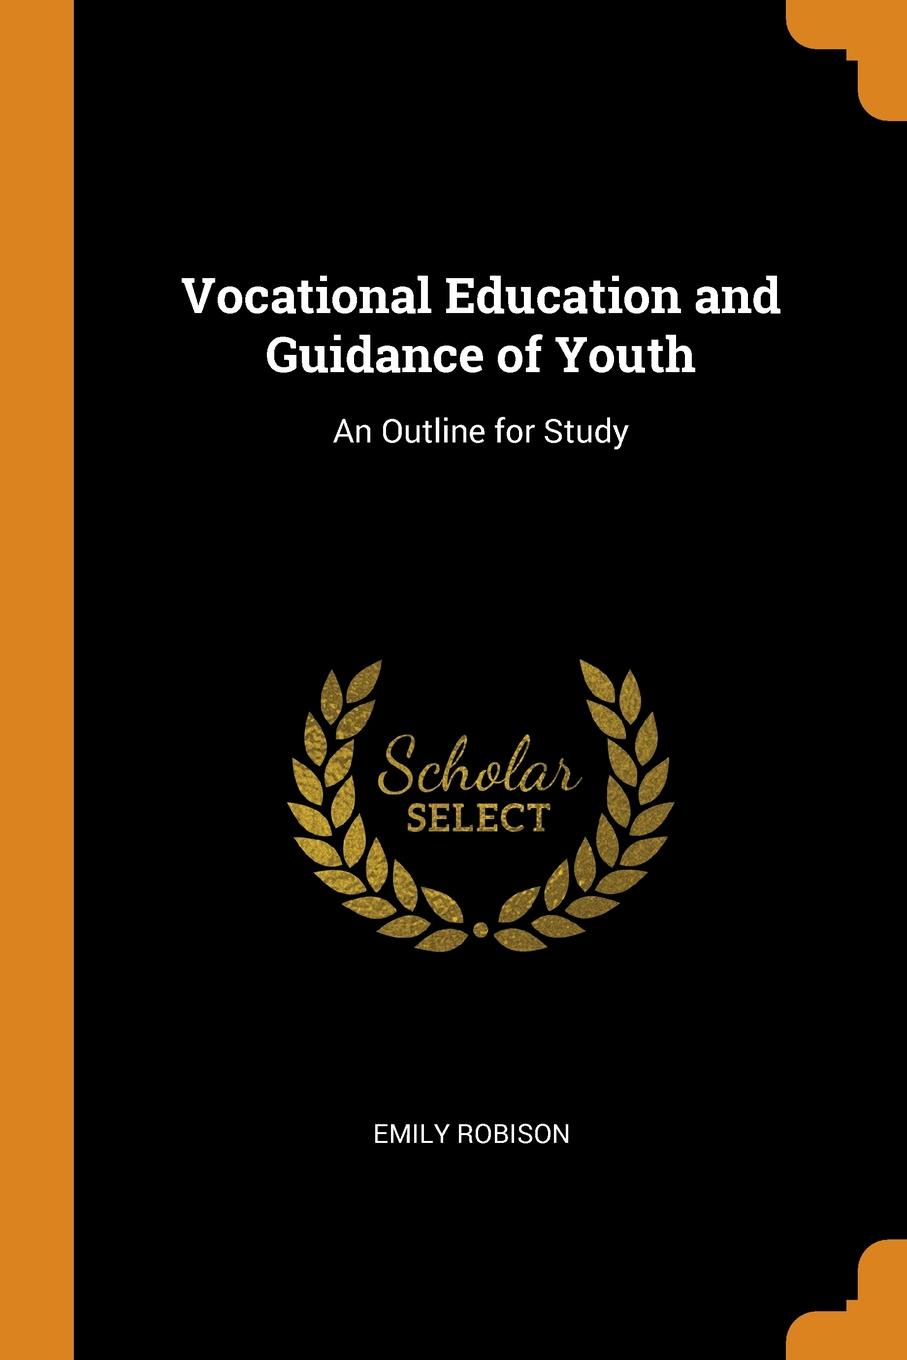 Vocational Education and Guidance of Youth. An Outline for Study